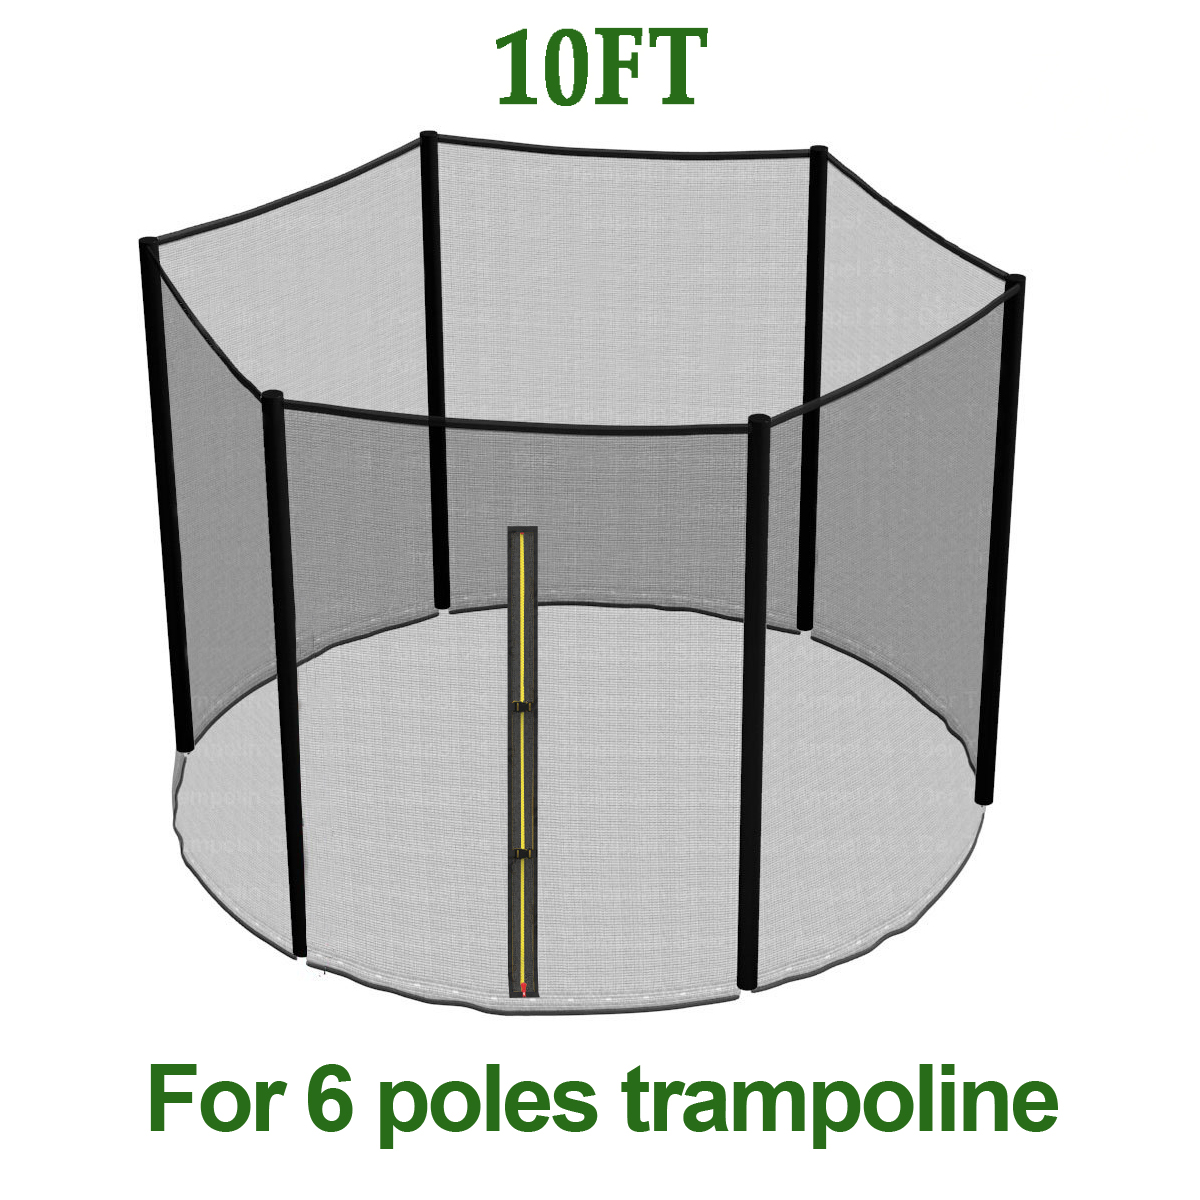 10 FT TRAMPOLINE REPLACEMENT SAFETY NET PADDING SPRING